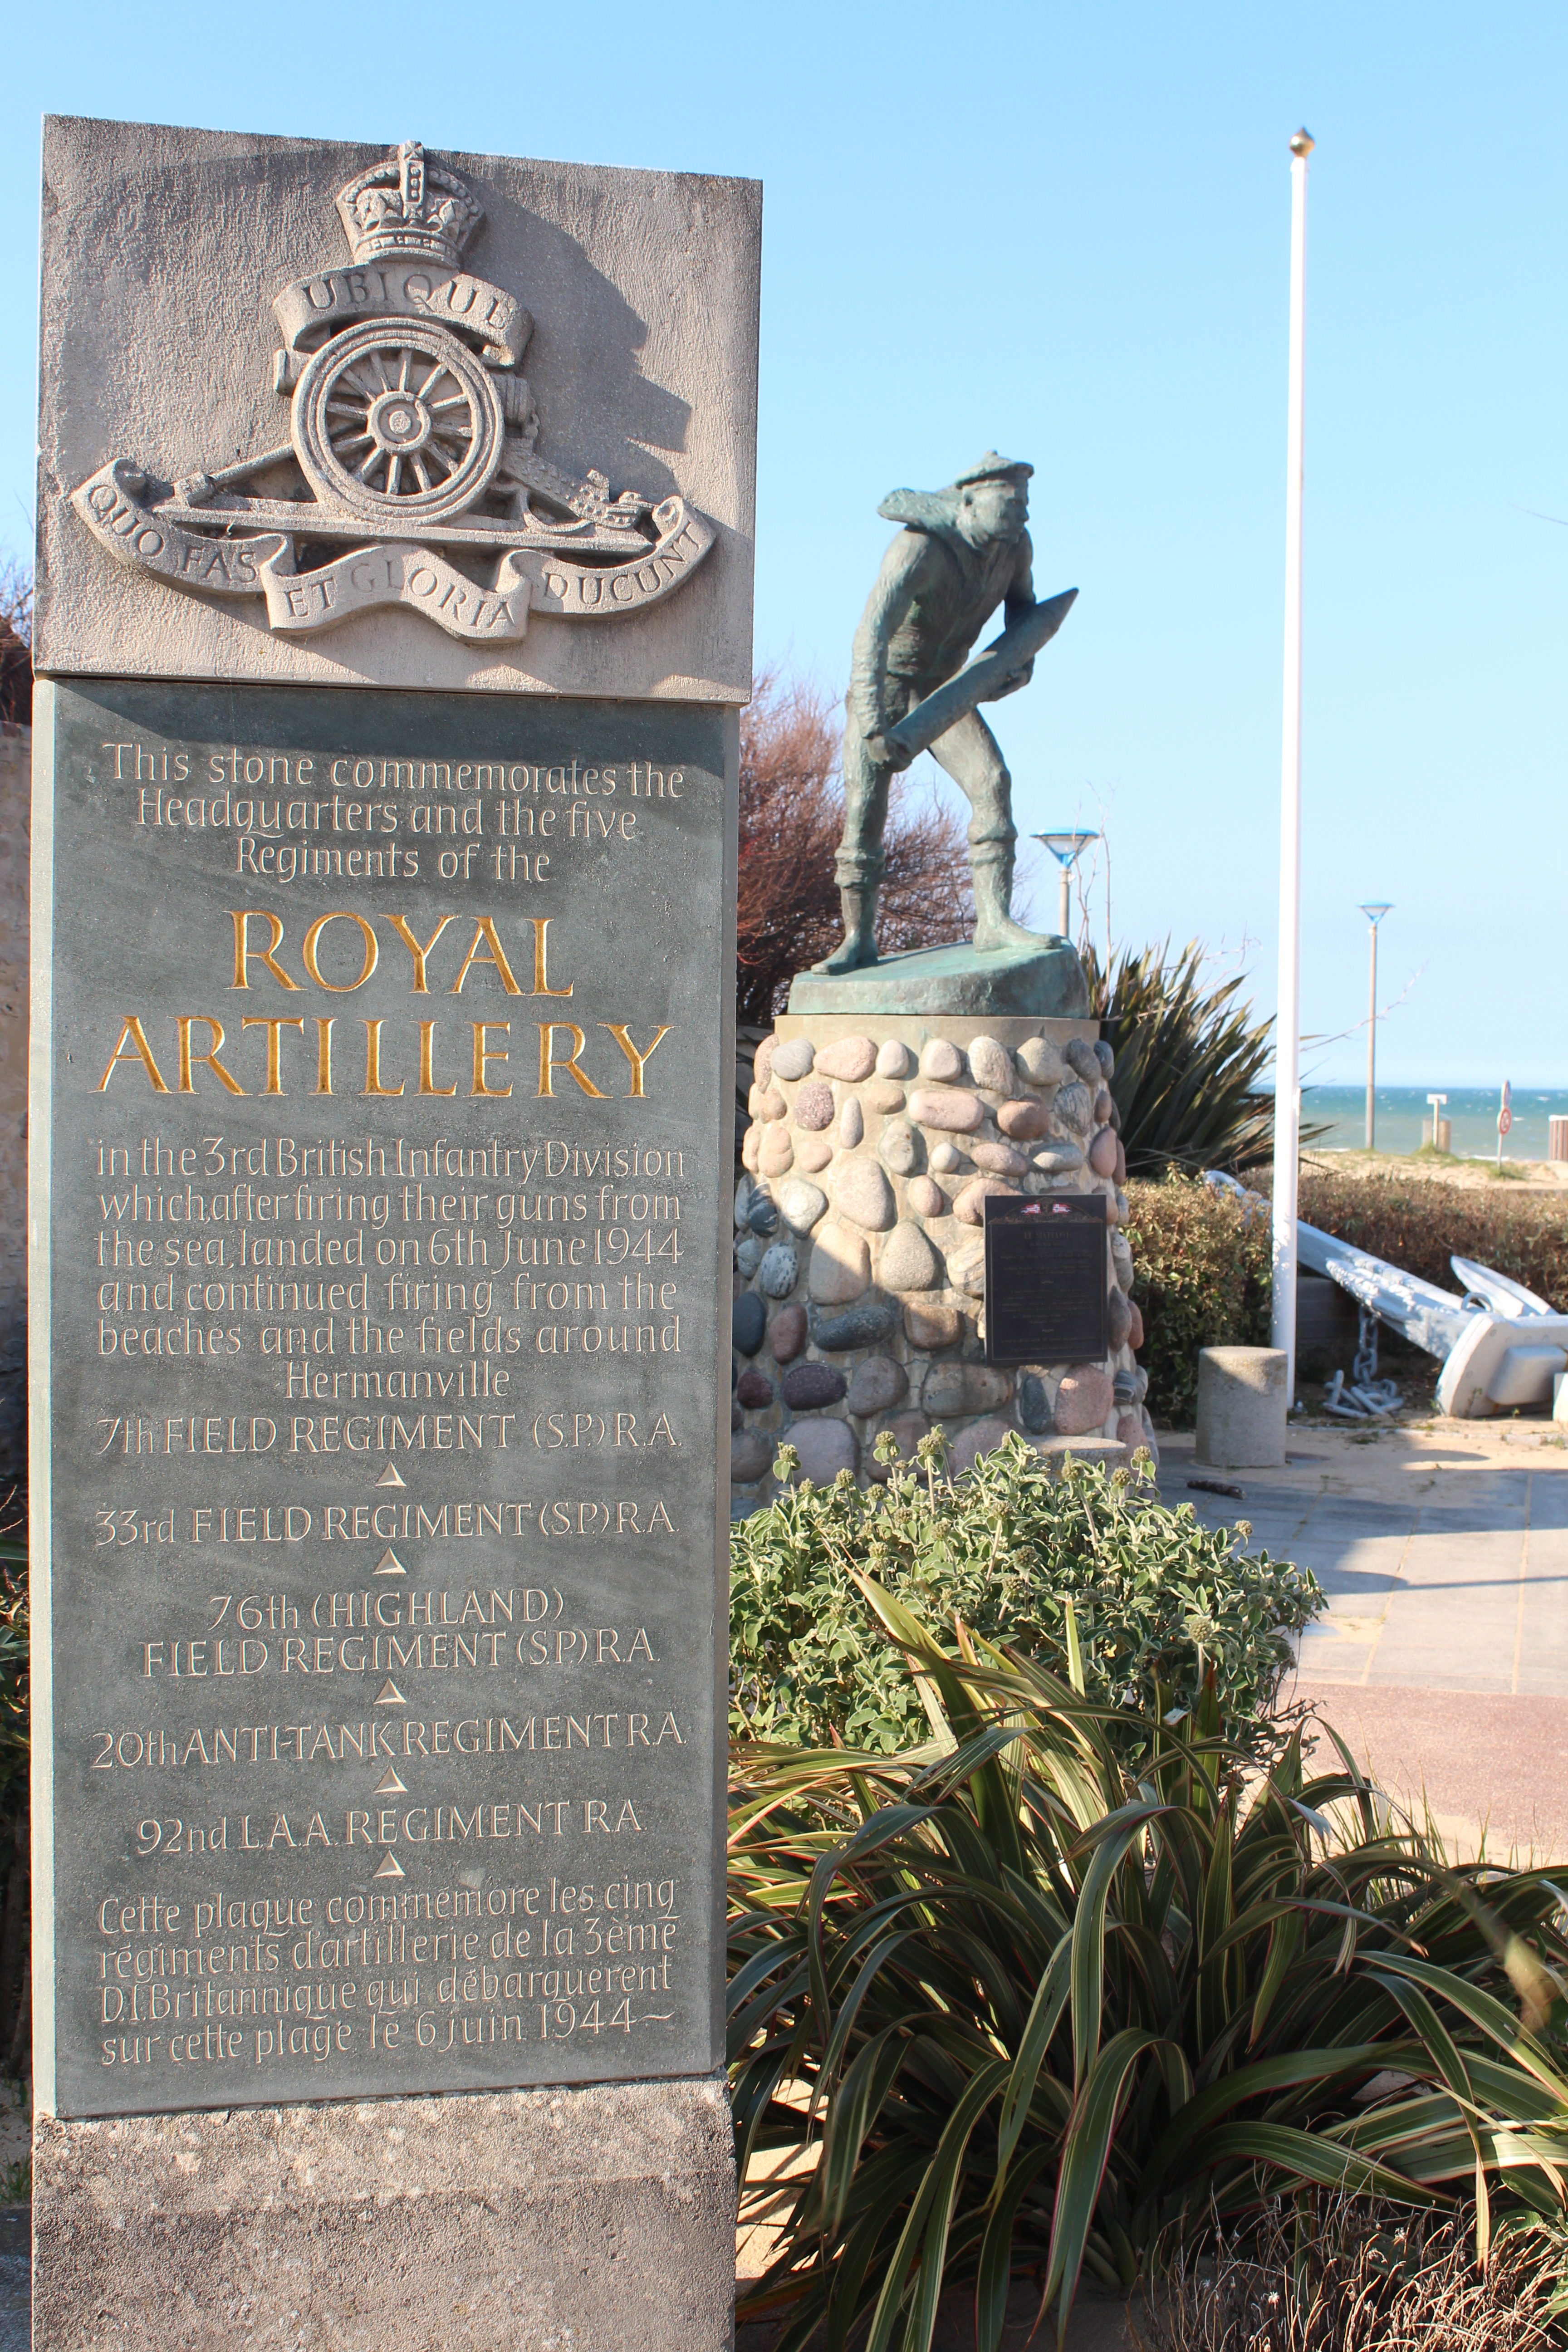 A memorial at Sword beach for the Royal Artillery with a bronze statute of a soldier in the background which has turned a shade of green.  The beach is just visible to the right of the picture.